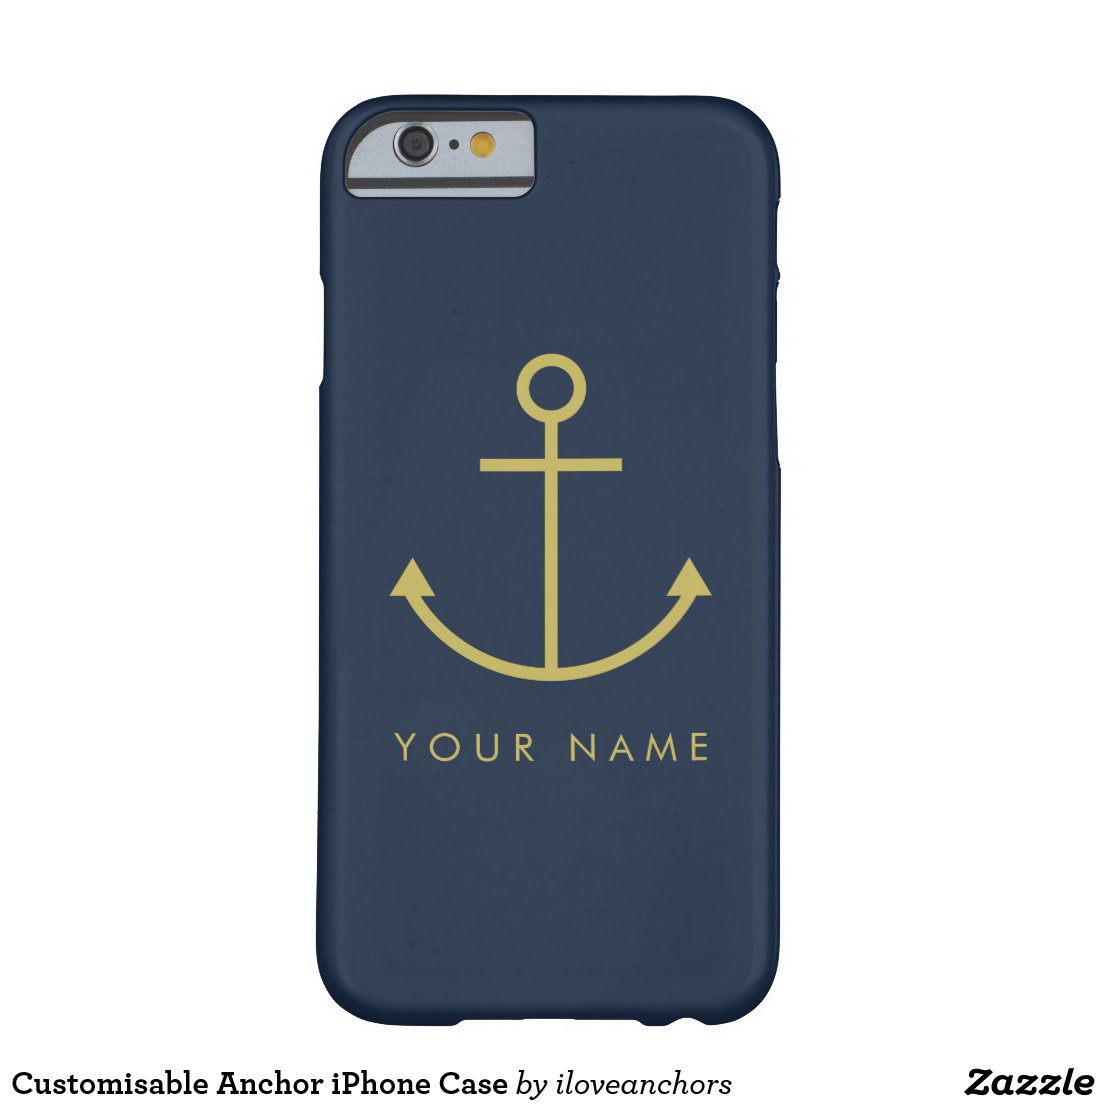 Customisable Anchor iPhone Case